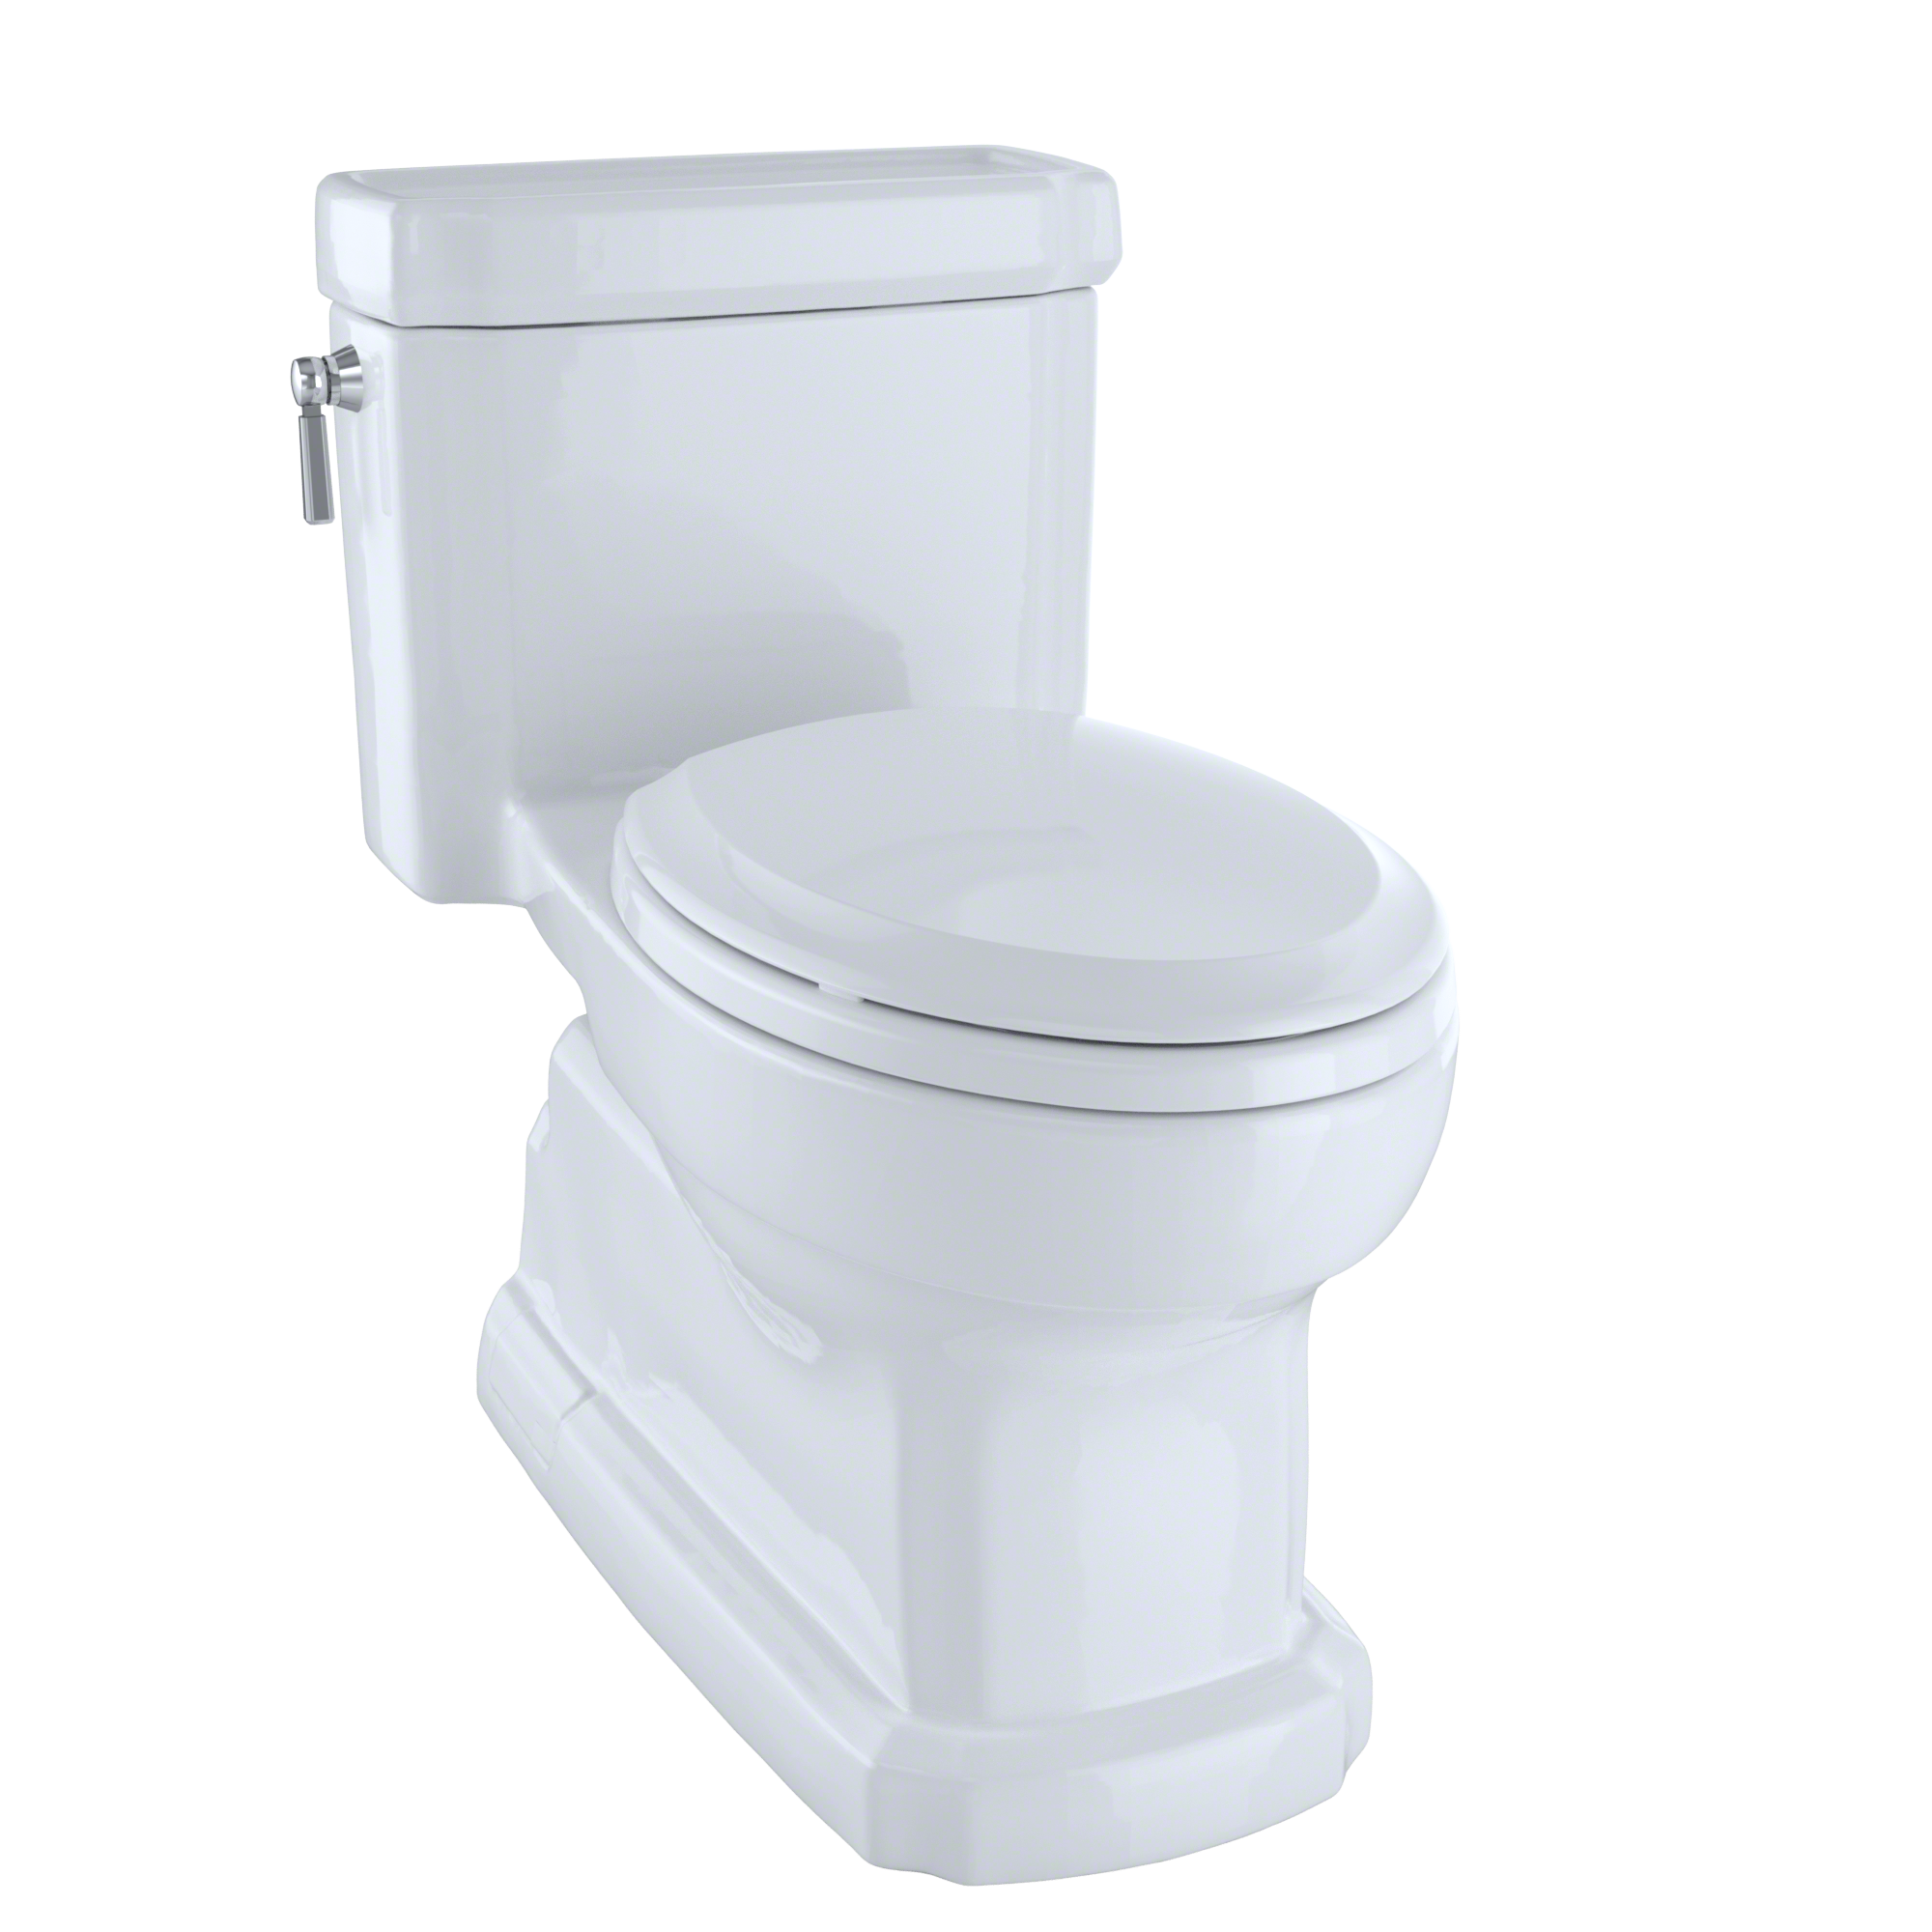 TOTO® Eco Guinevere® Elongated 1.28 GPF Universal Height Skirted Toilet with CeFiONtect™, Cotton White - MS974224CEFG#01